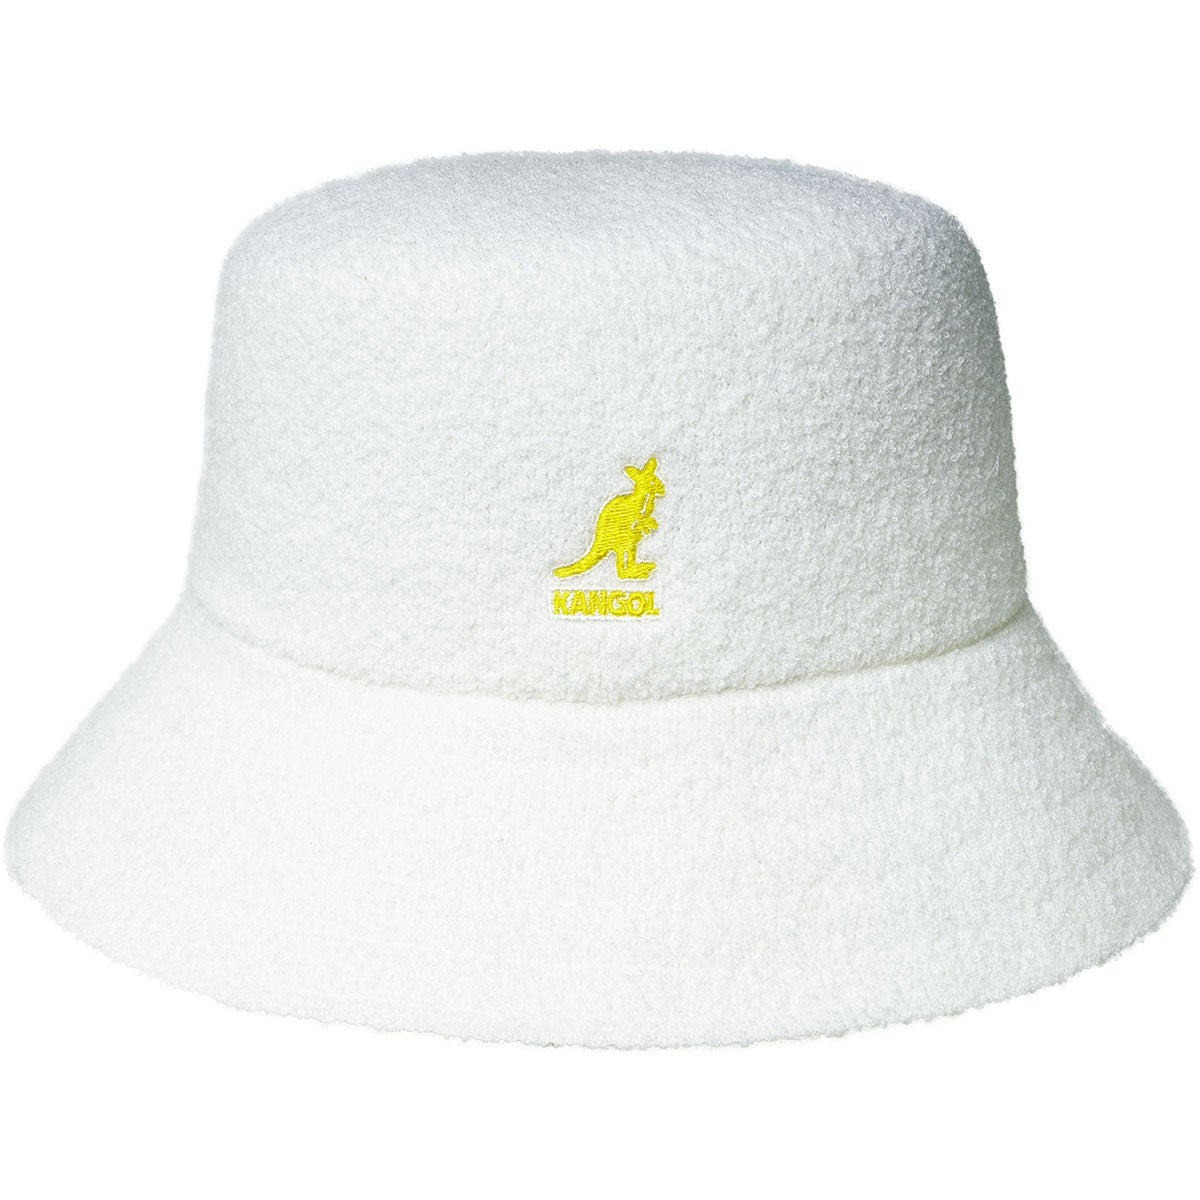 Women's Vintage Hats | Old Fashioned Hats | Retro Hats Limited Edition Bermuda Lahinch $70.00 AT vintagedancer.com